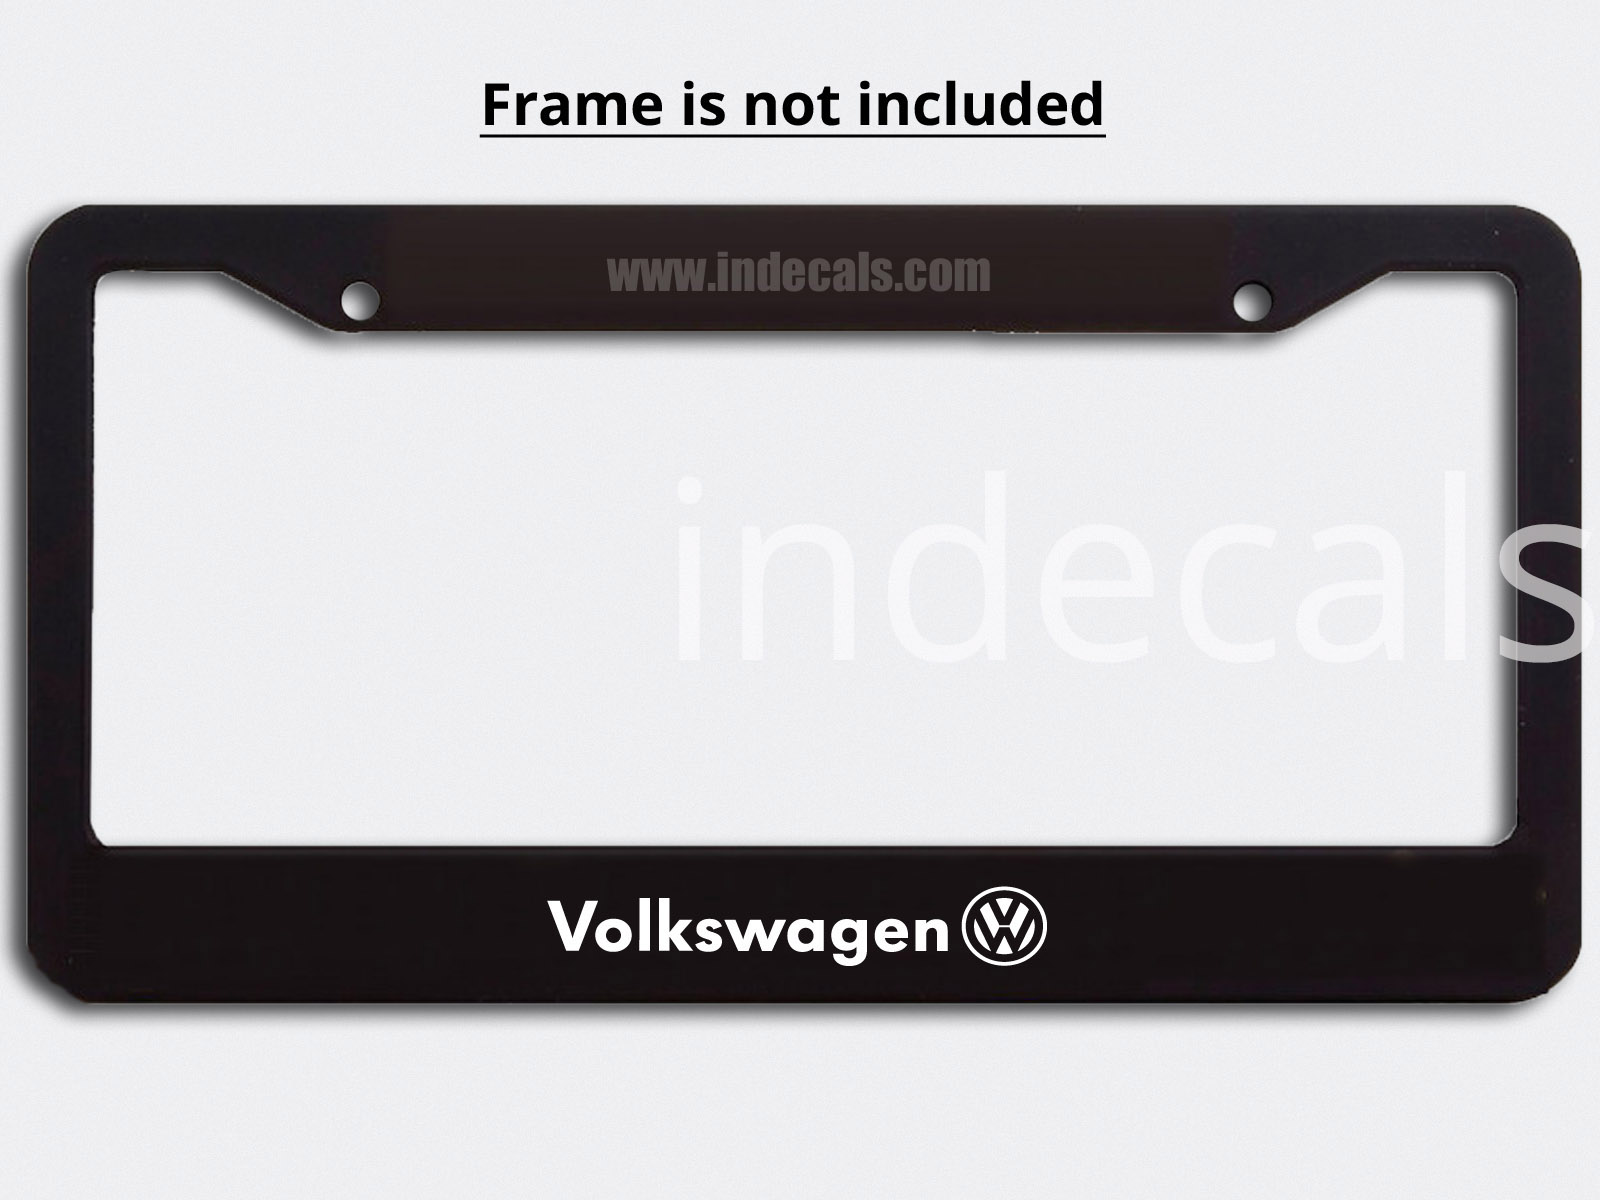 3 x Volkswagen Stickers for Plate Frame - White